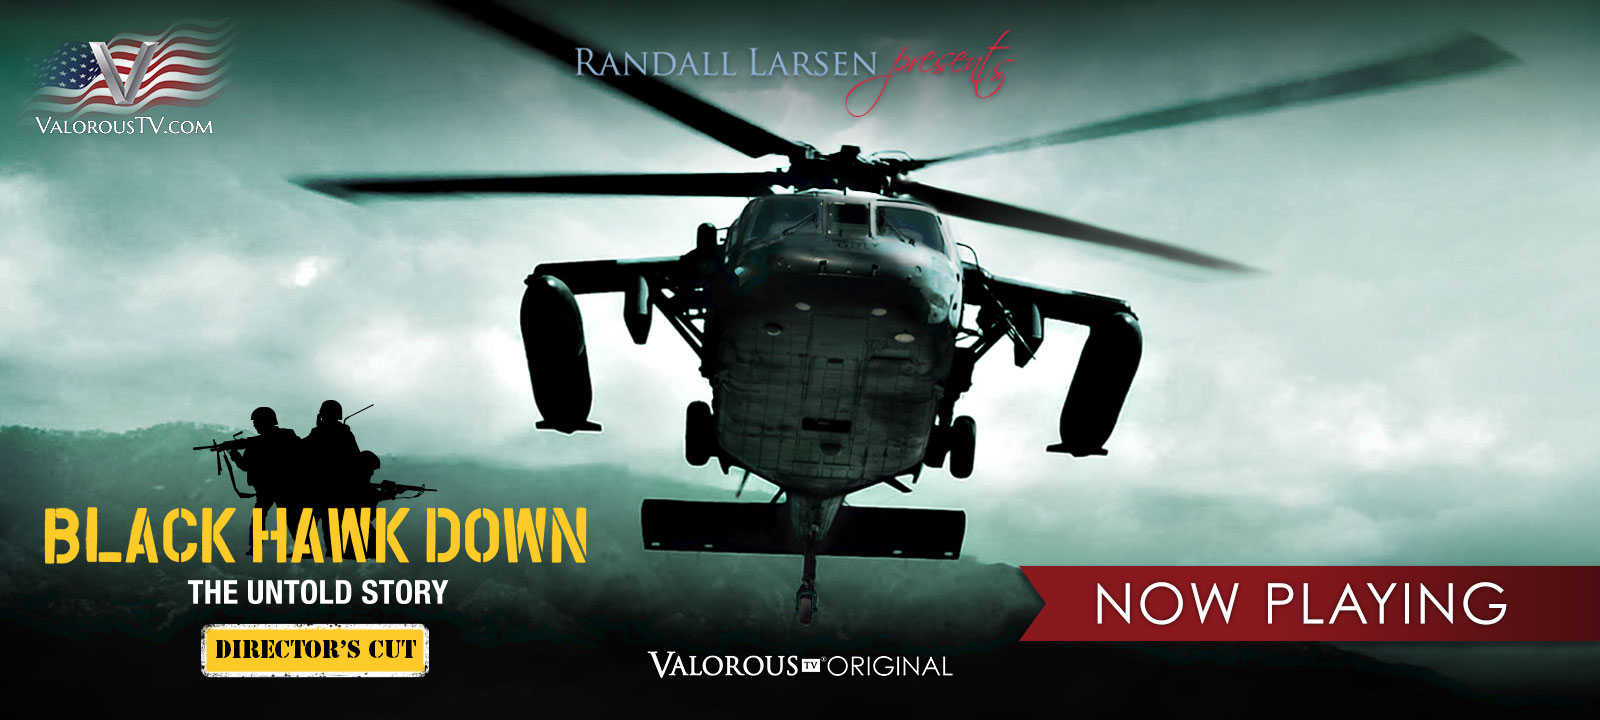 Black Hawk Down:  The Untold Story Director's Cut